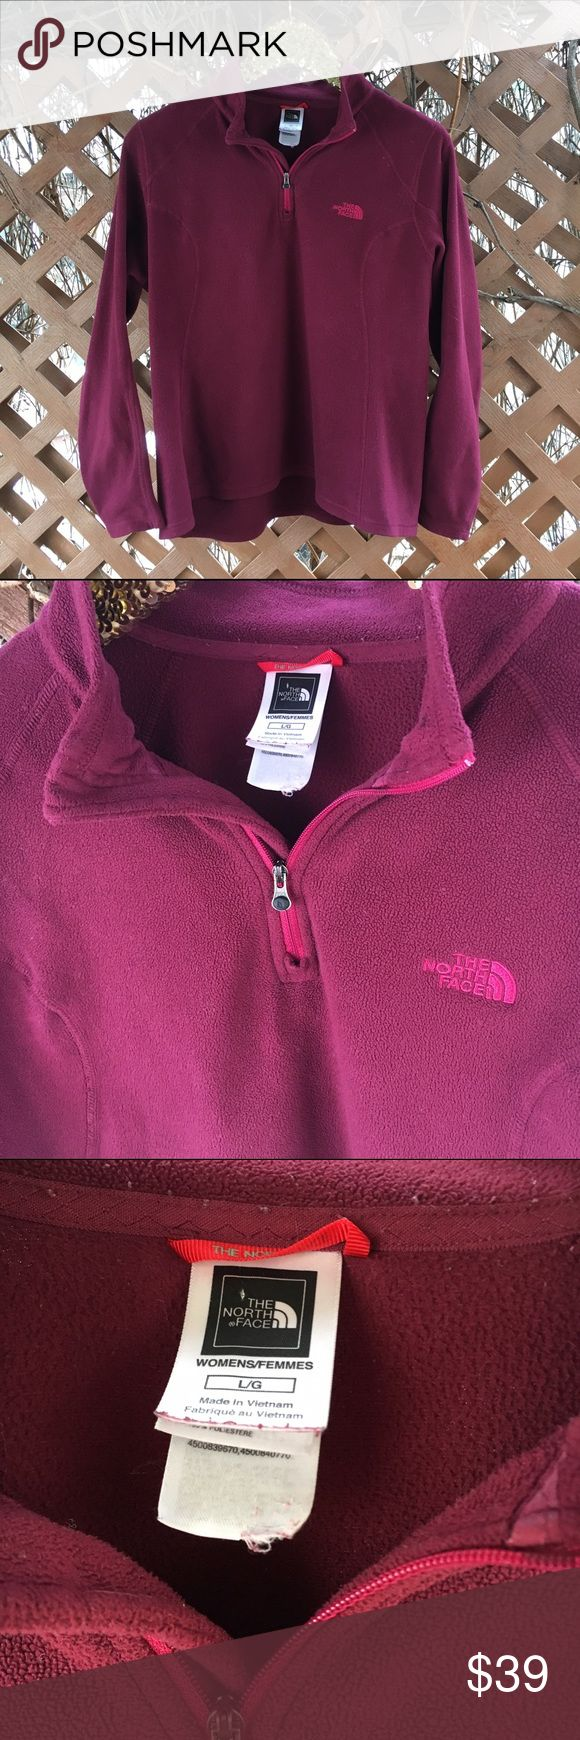 "{north face} Maroon Fleece 3/4 Zip Pullover L EUC! Worst wash wear/pilling is inside the collar. Will de-lint again for good measure before sending. Gently loved and plenty of life left! Perfect for layering whether you're skiing or lying on the couch! The North Face quality, comfort and timeless style. No trendier color than maroon, burgundy, or wine right now! 23"" pit to pit, 26"" shoulder to hem length, 24"" sleeves. Offers warmly welcomed! The North Face Tops"